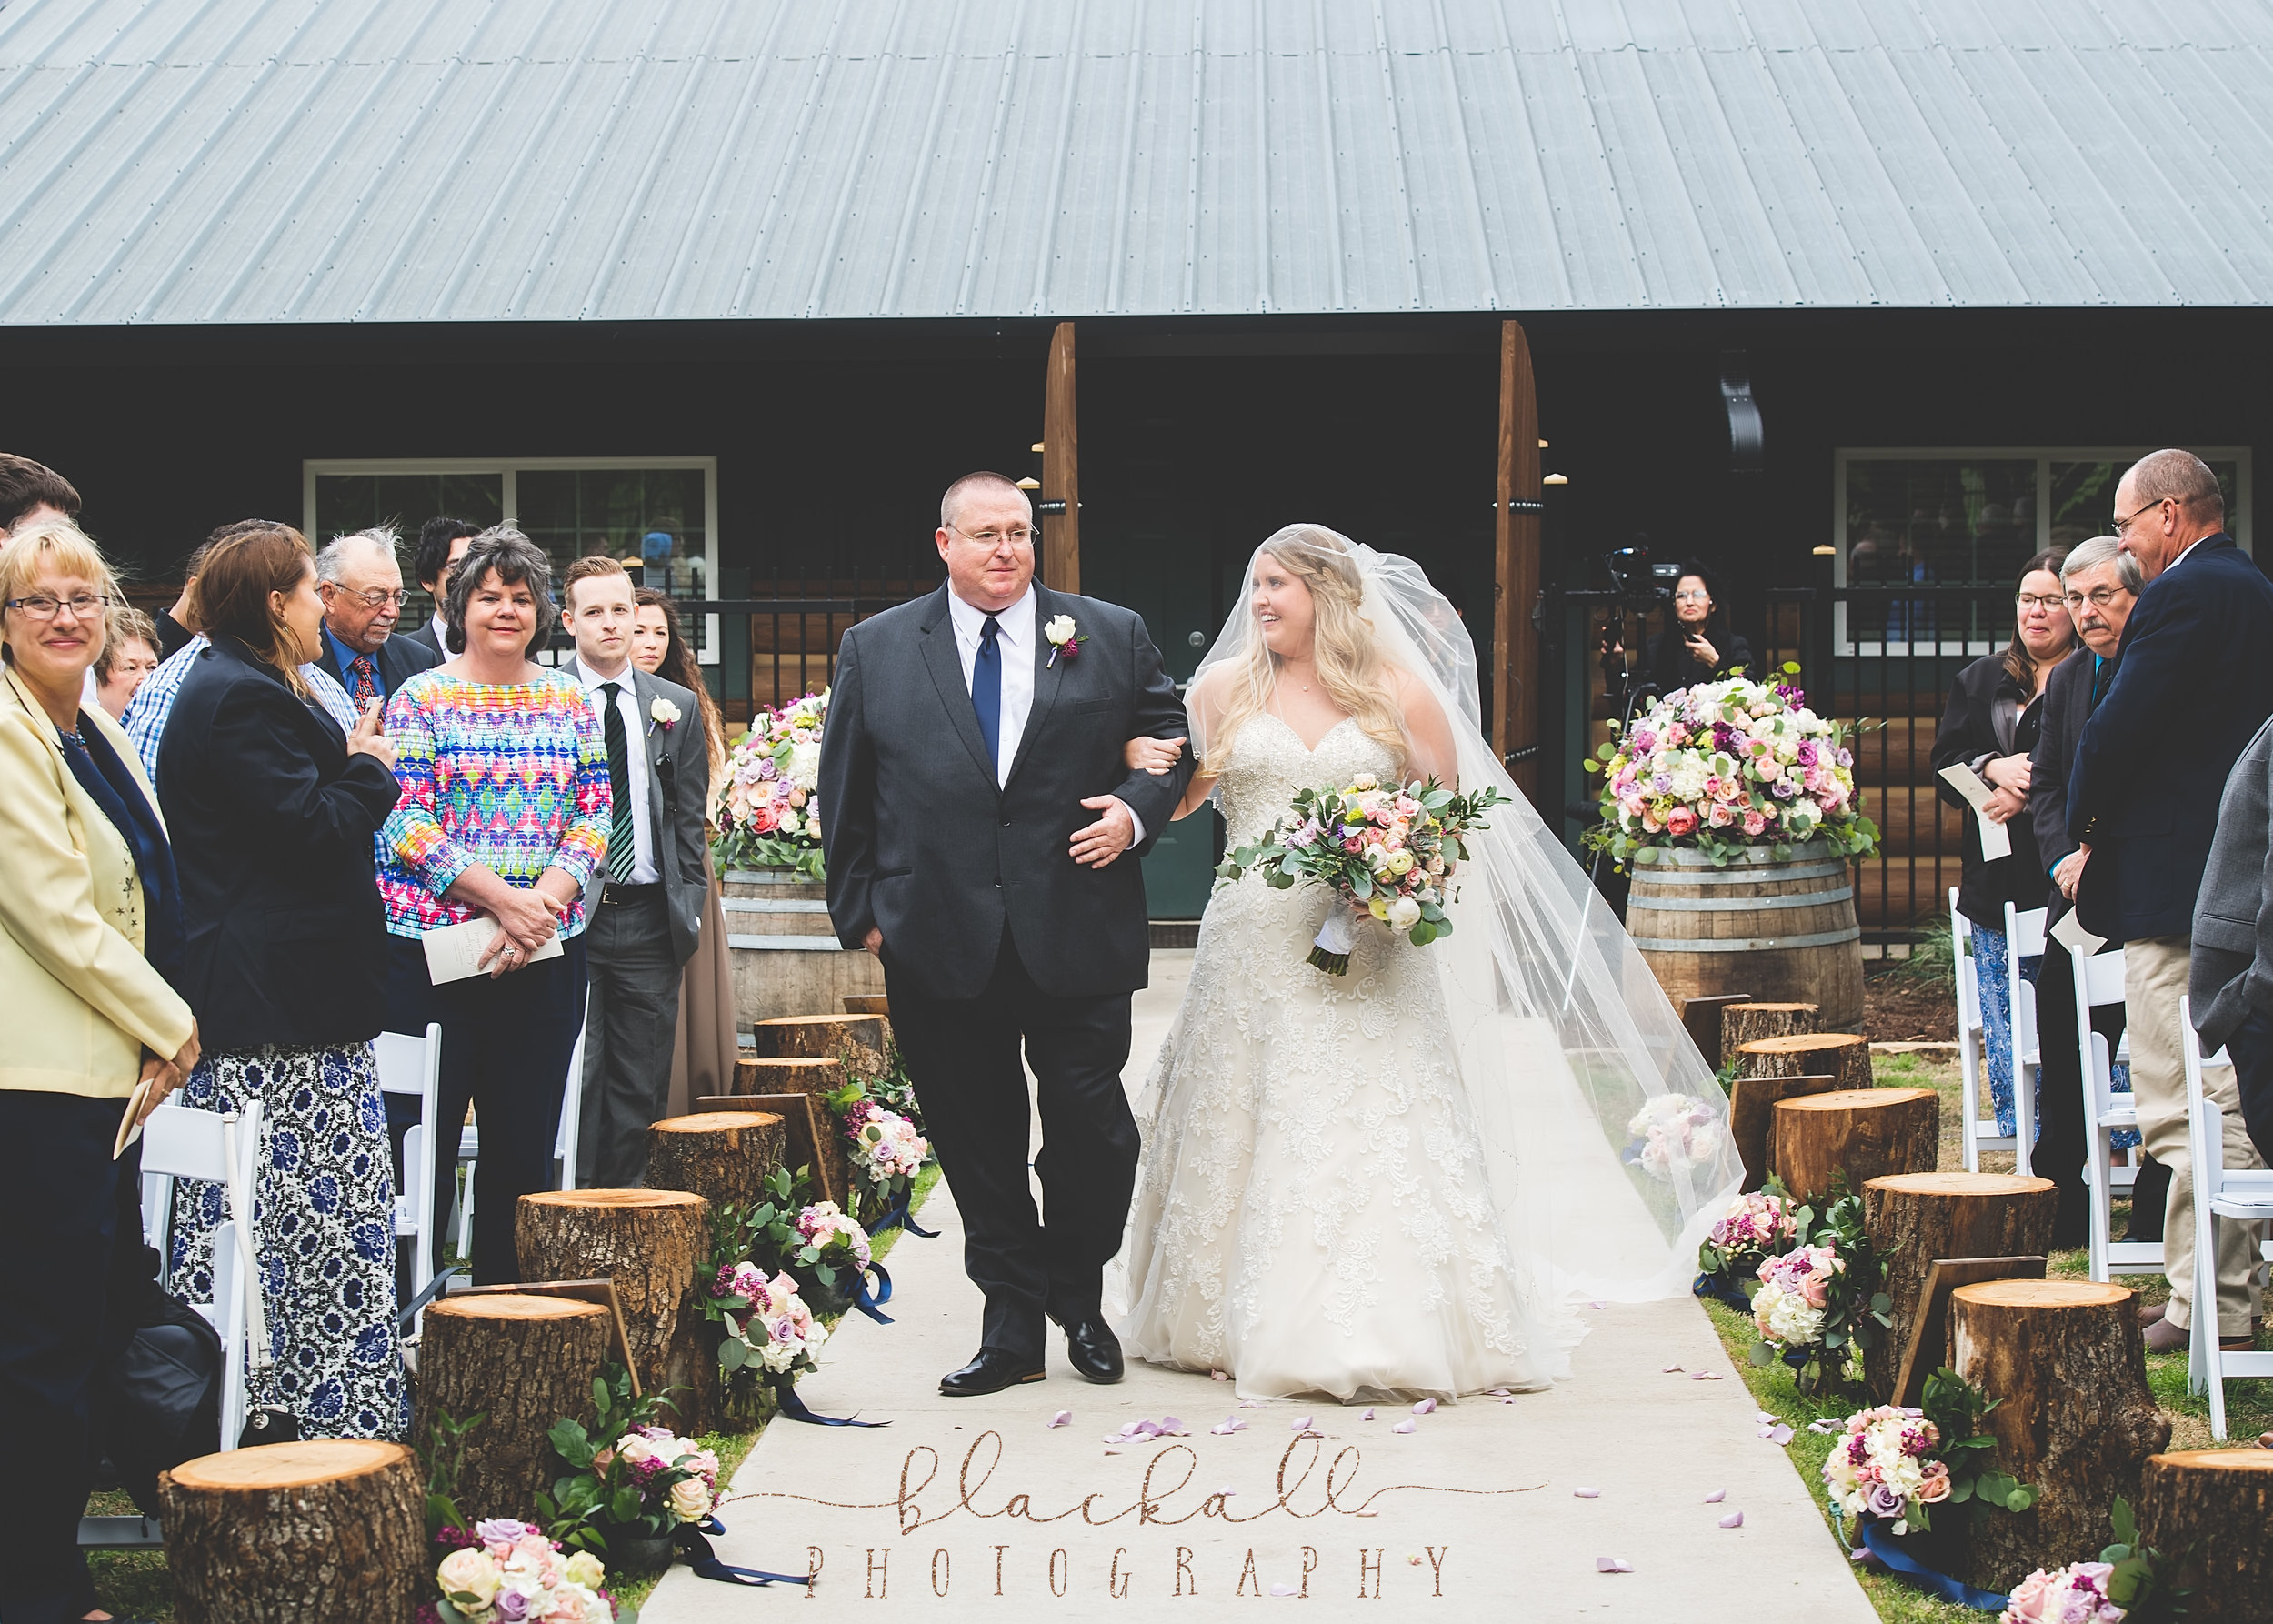 BUCHLER bride_ BlackallPhotography_20.JPG